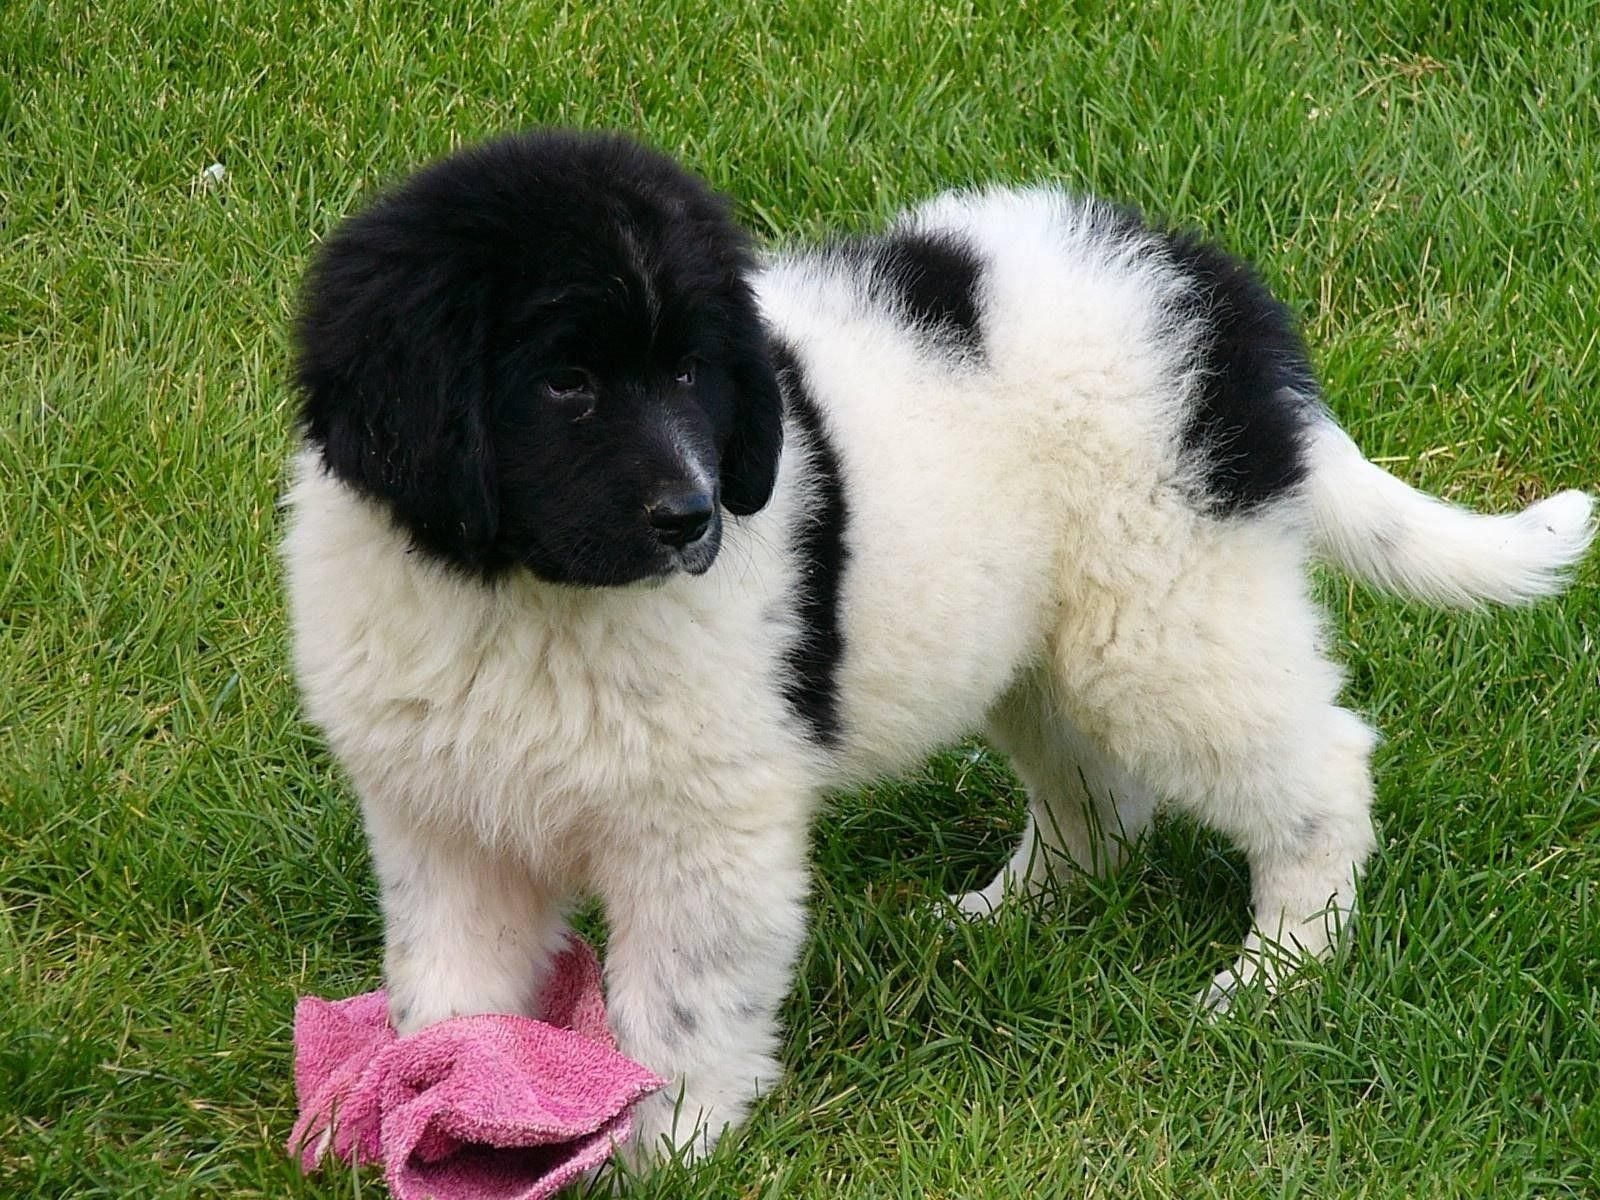 Vetsweston Newborn Landseer Dogs Eyes Closed Ears To Hear Too Wang Dog Was Born Almost Will Open At 9 To 13 Days 13 To 17 Day Bebes Animaux Toutous Chien